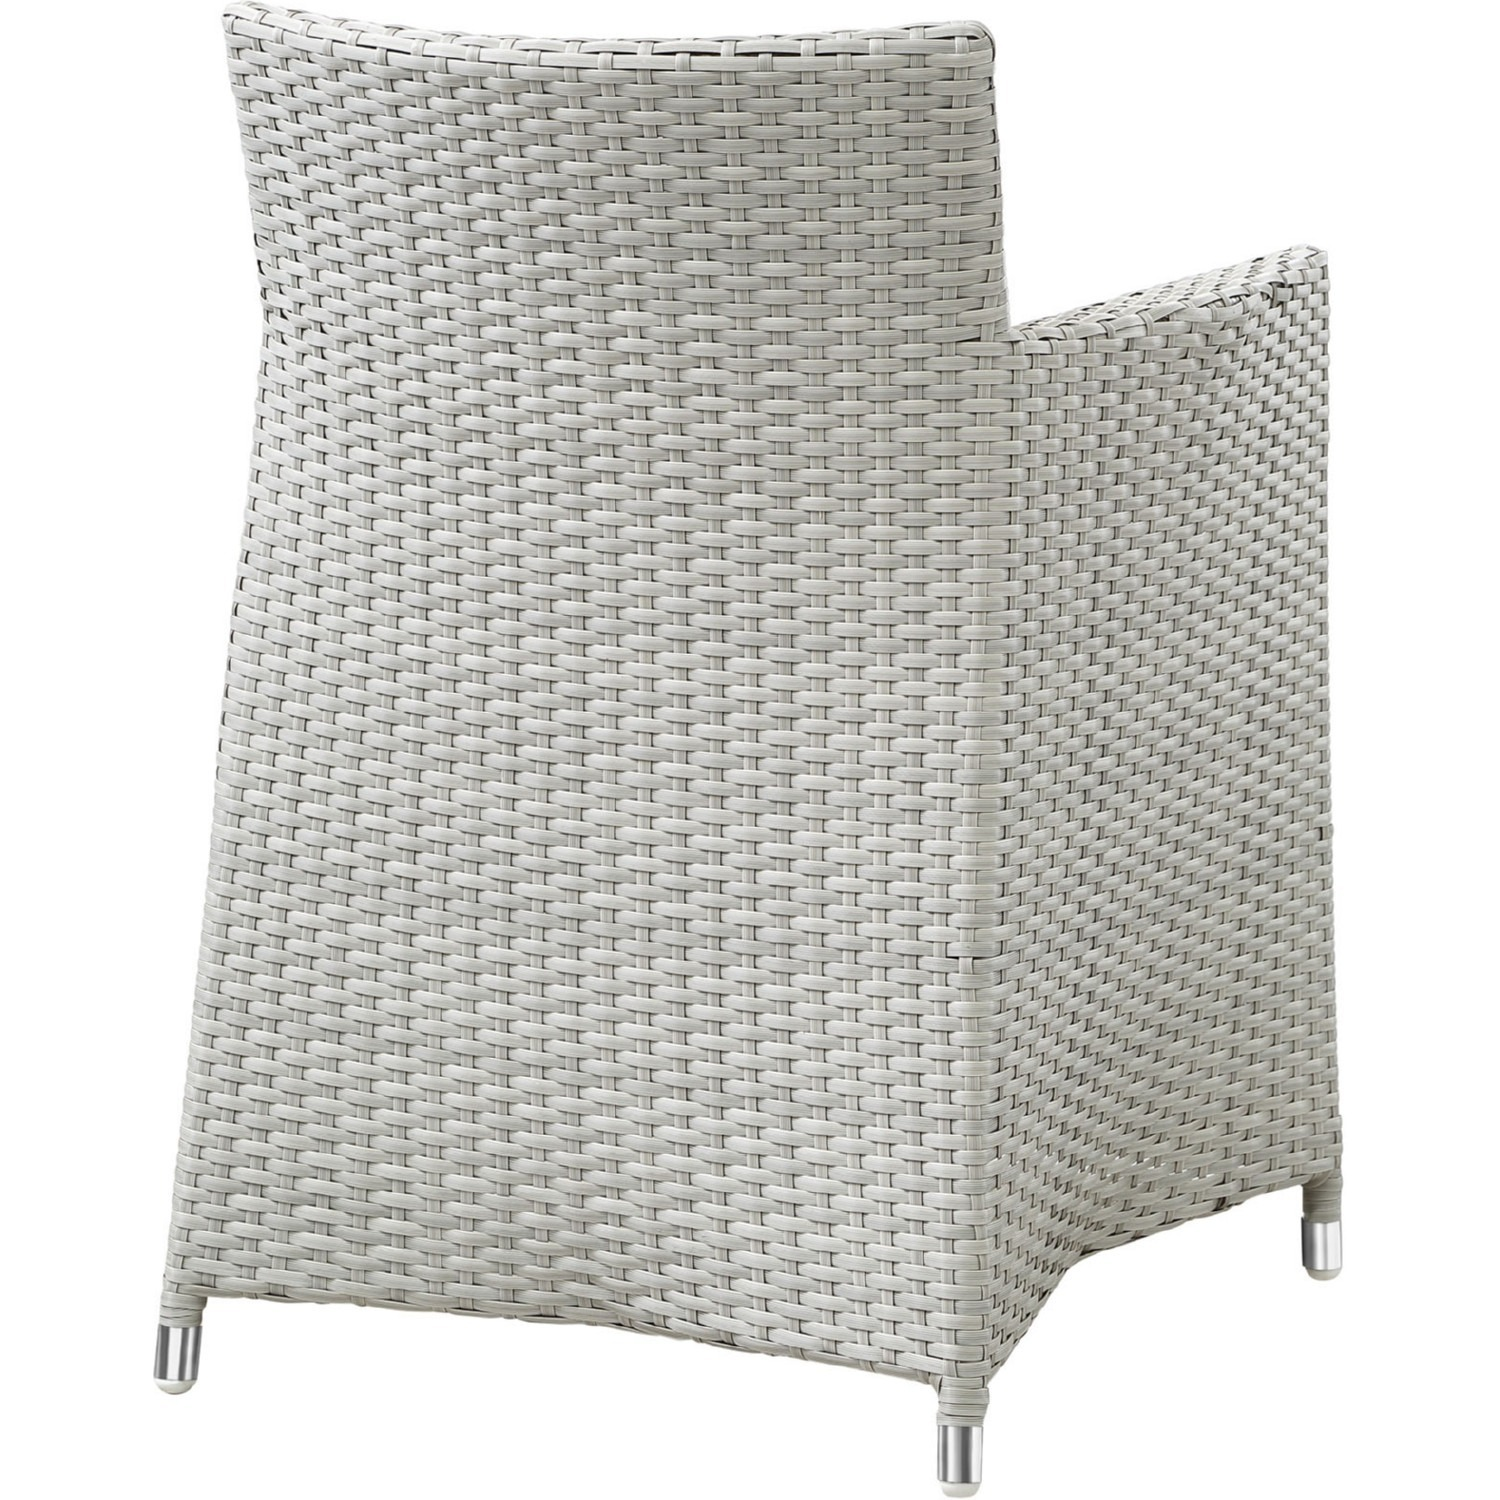 7-Piece Dining Set In Gray Rattan Weave Finish - image-3